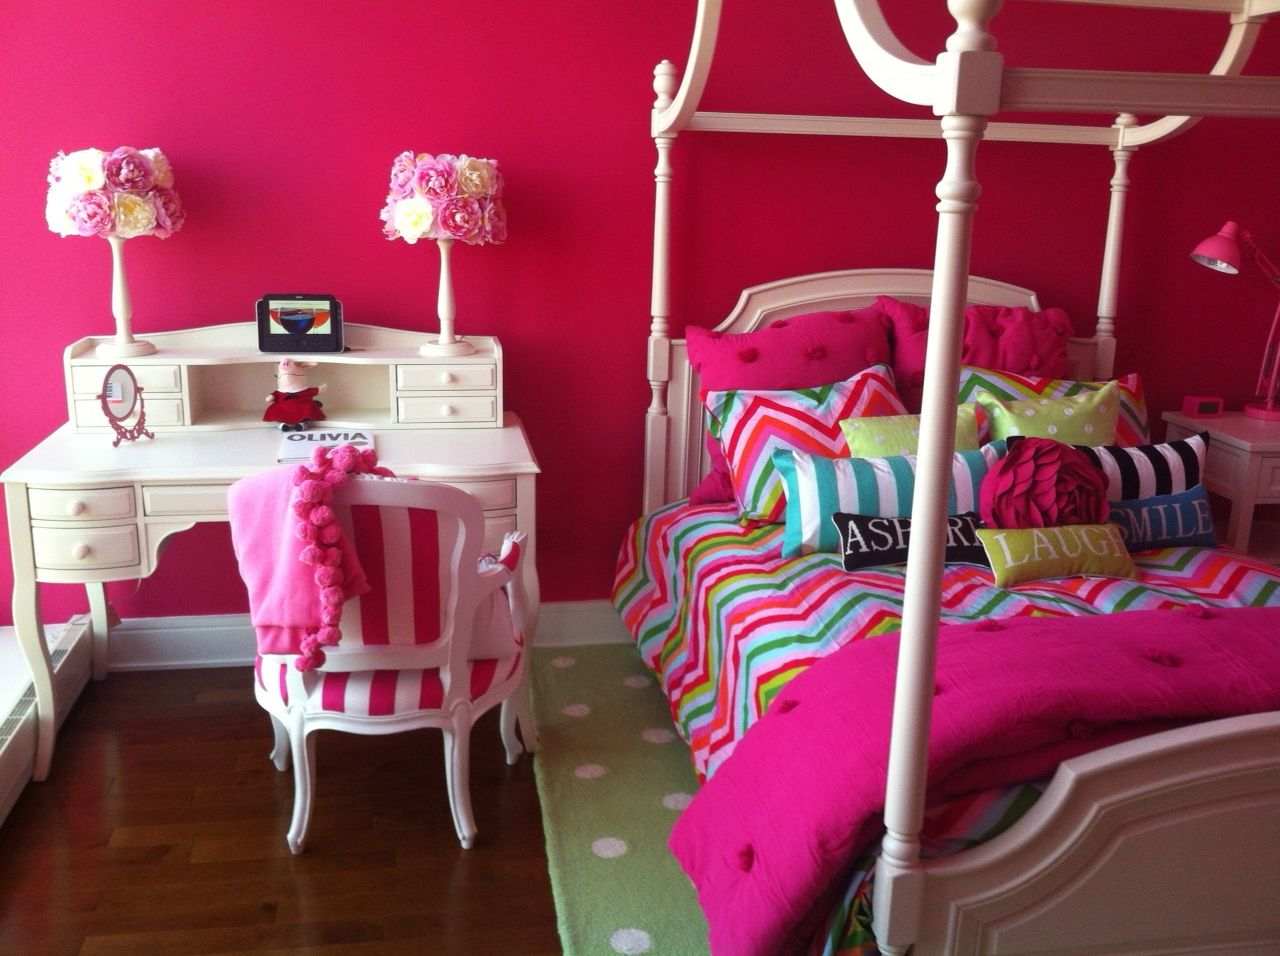 My Daughters Bedroom Pottery Barn Teen Bed And Desk Bedding From - Pottery barn teenagers